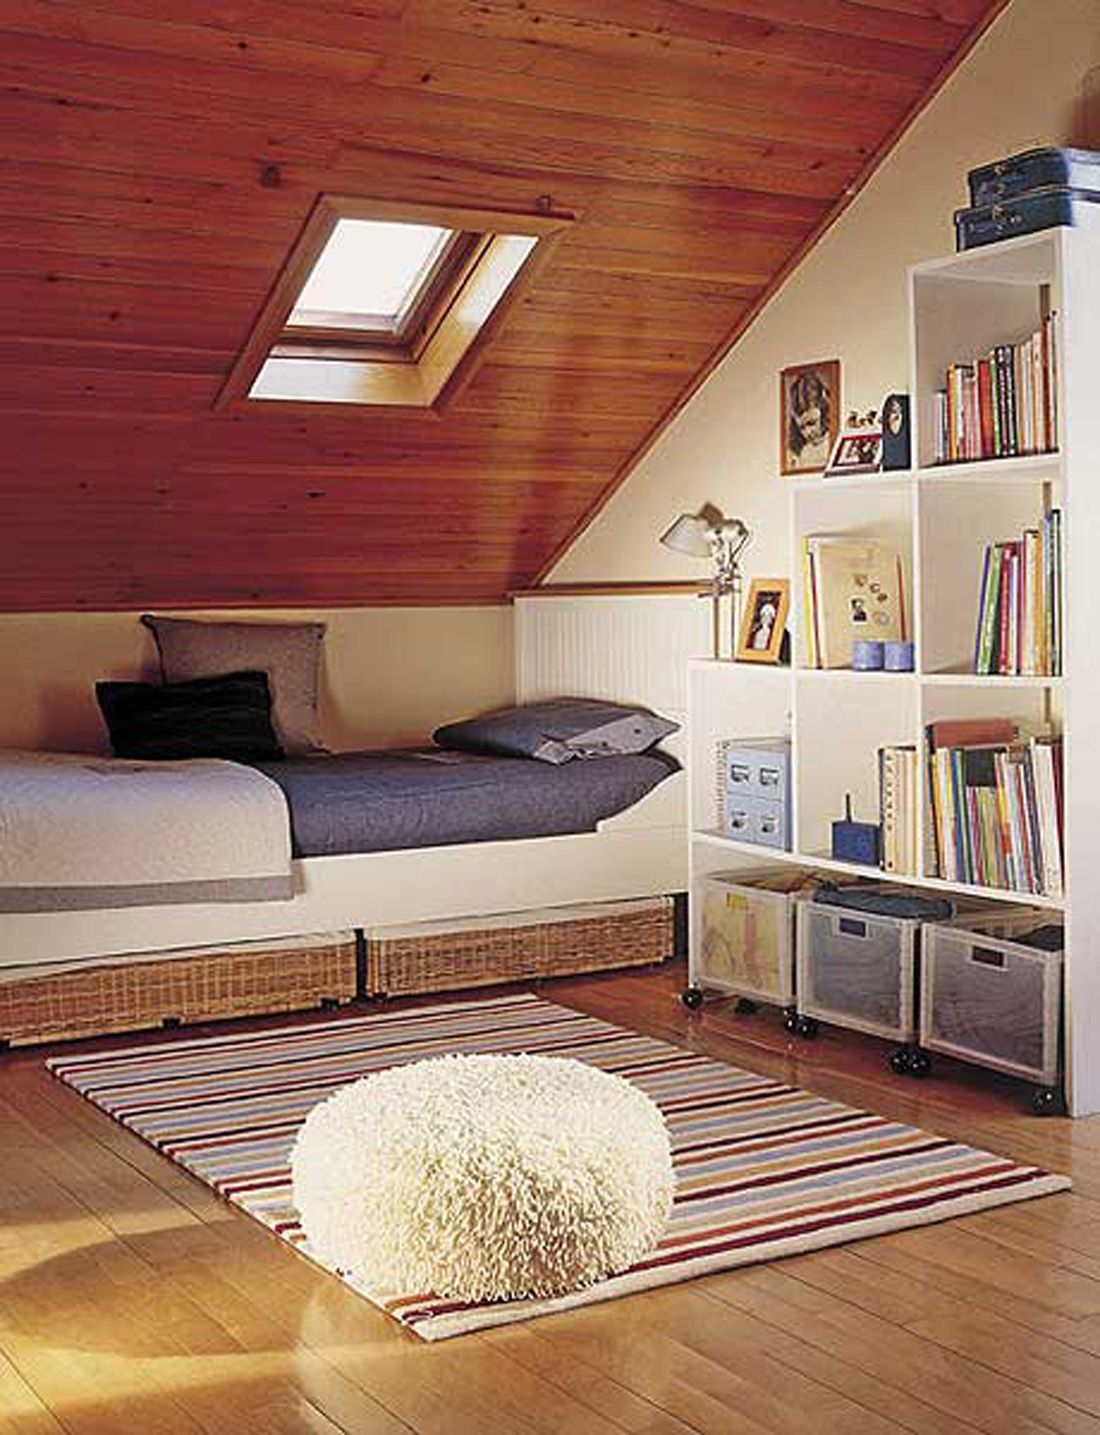 33 Awesome Attic Room Ideas, Attic Bedroom Designs